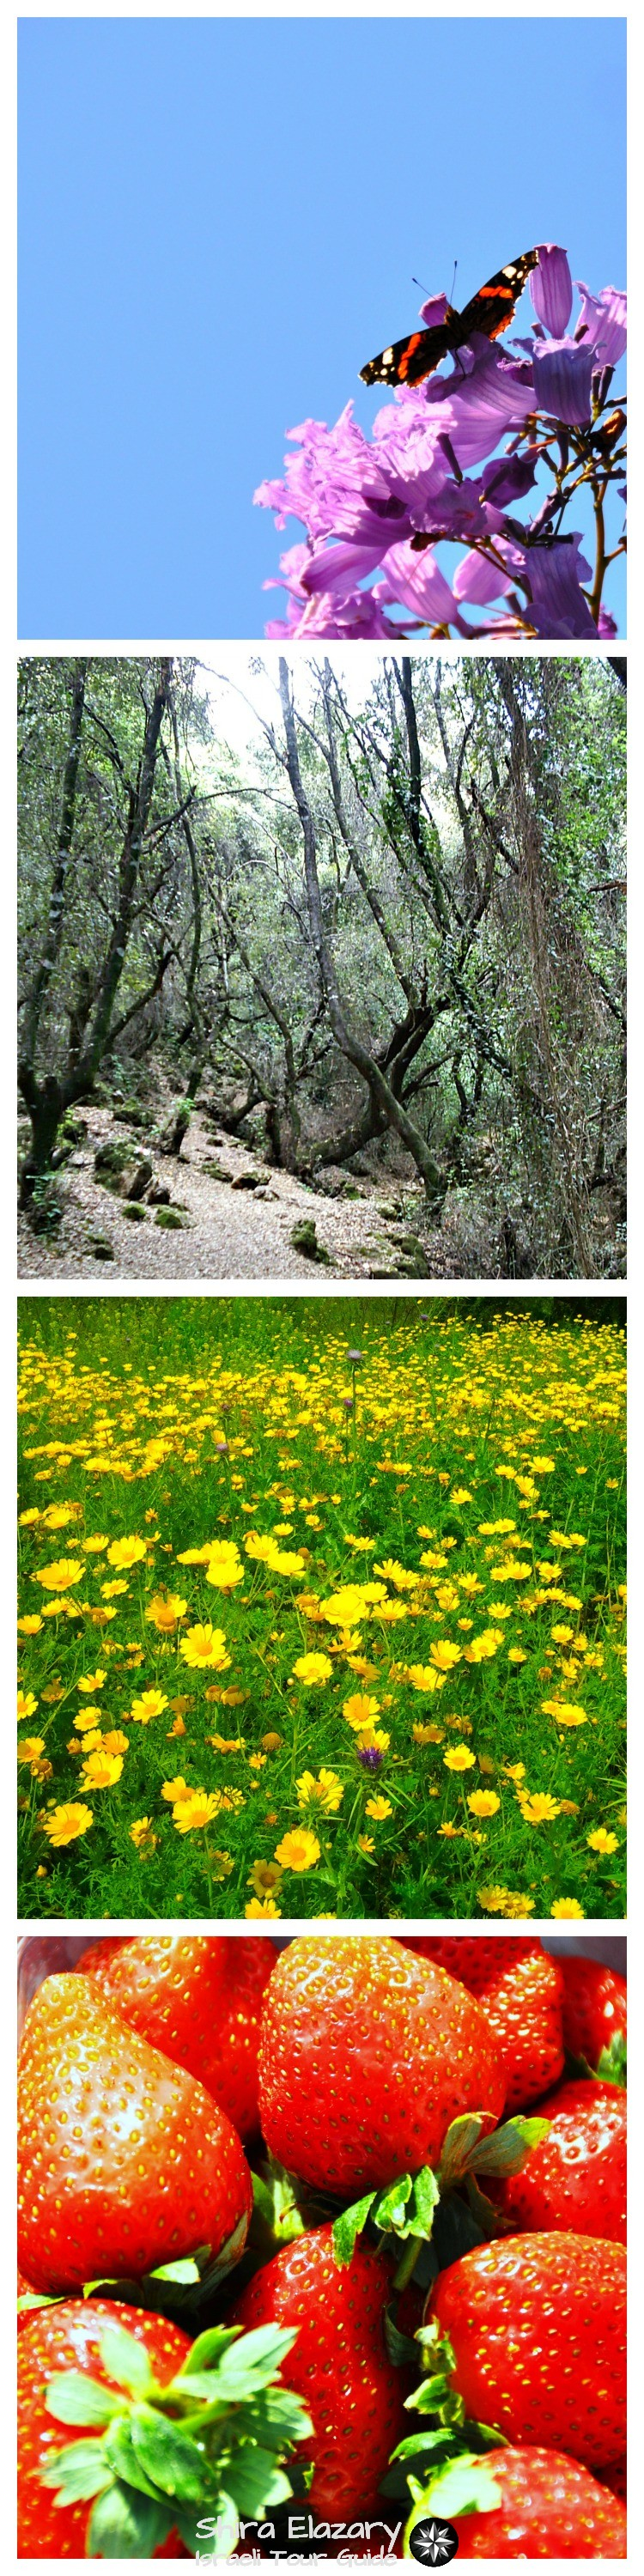 Four photos depicting scenes of nature typical to Israel